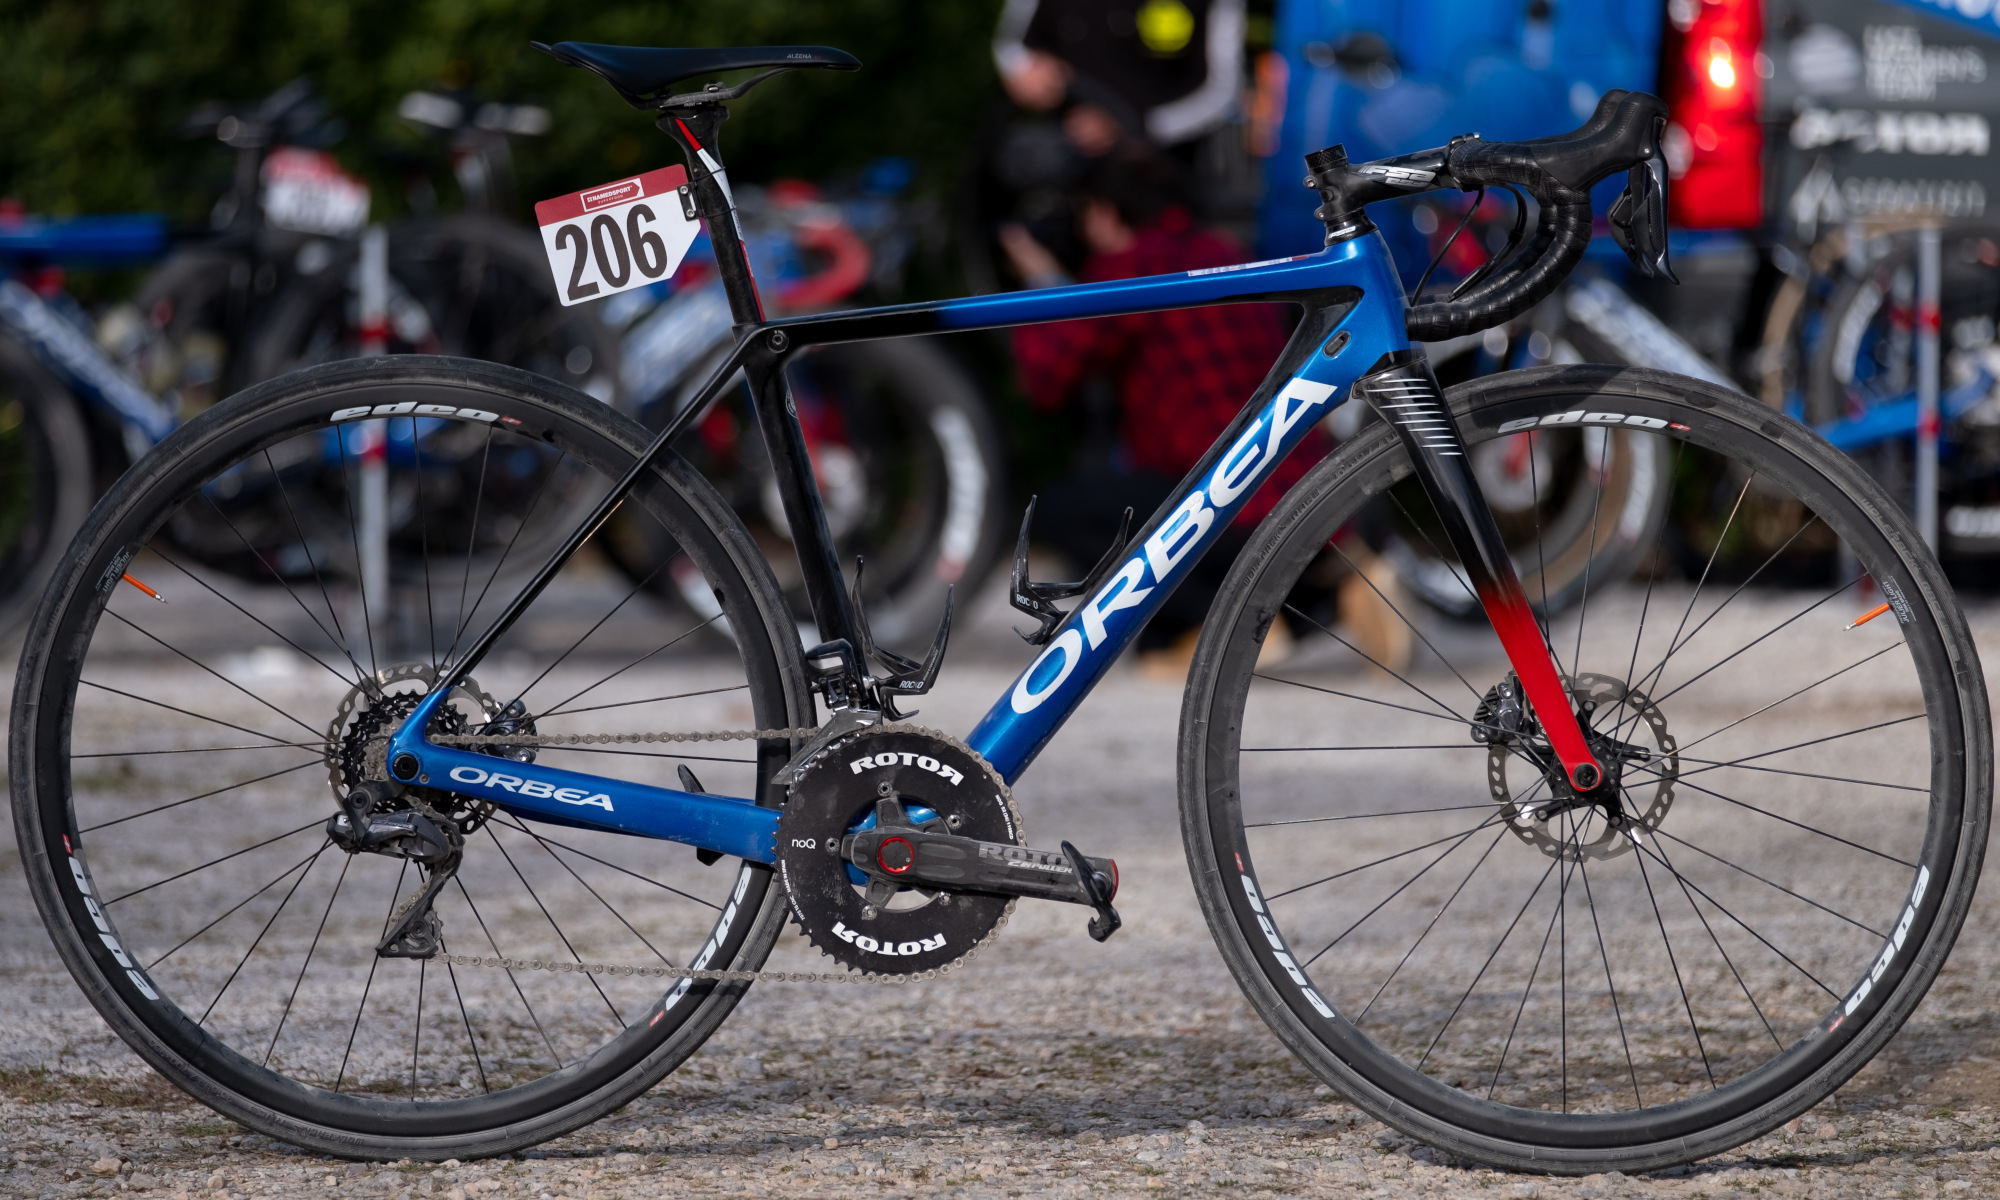 Orbea Strade Bianche WNT Rotor Cycling Team